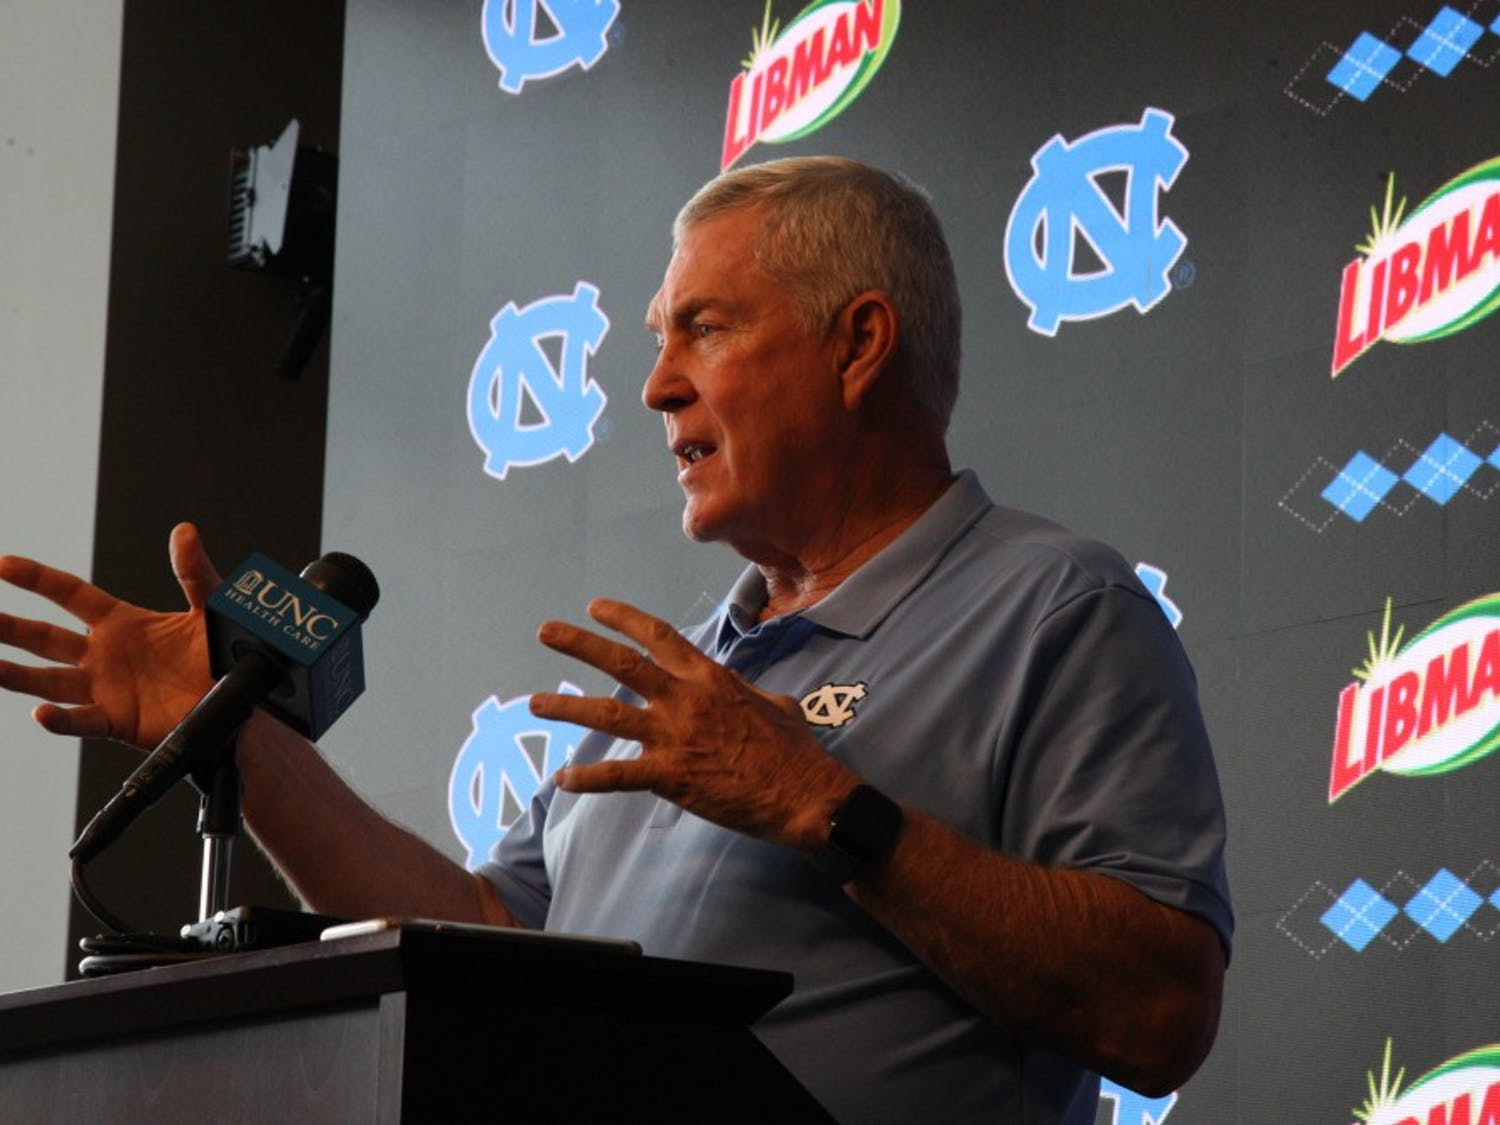 Football's head coach Mack Brown delivers a speech to a press conference on July 31, 2019.